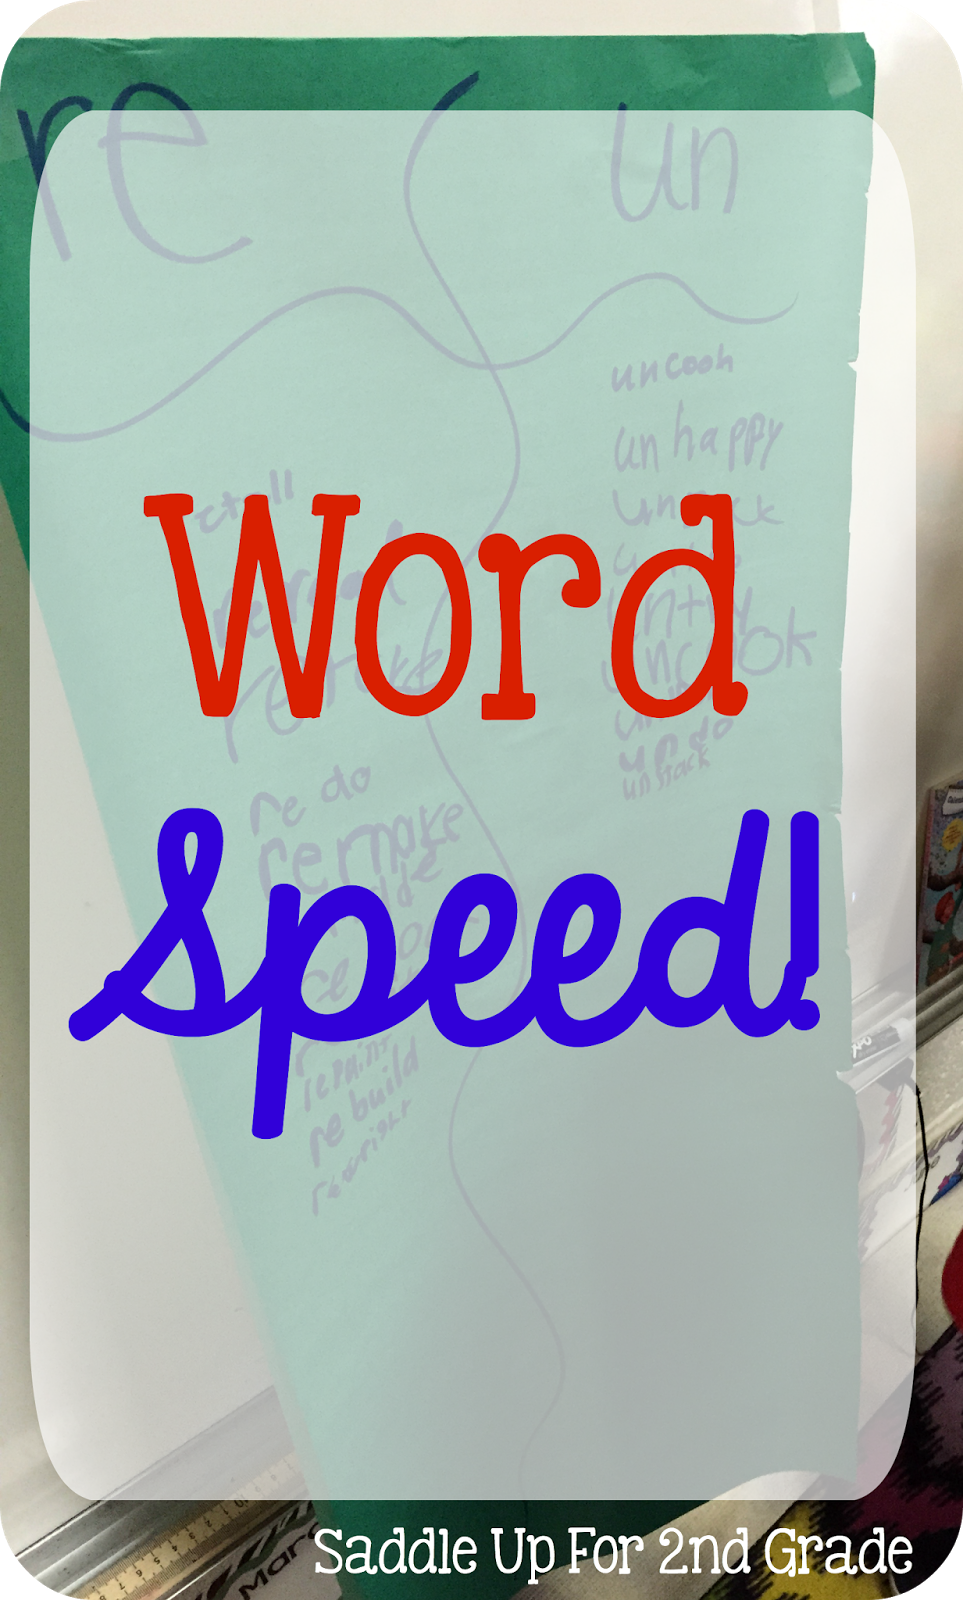 4 Games To Increase Vocabulary Success Saddle Up For